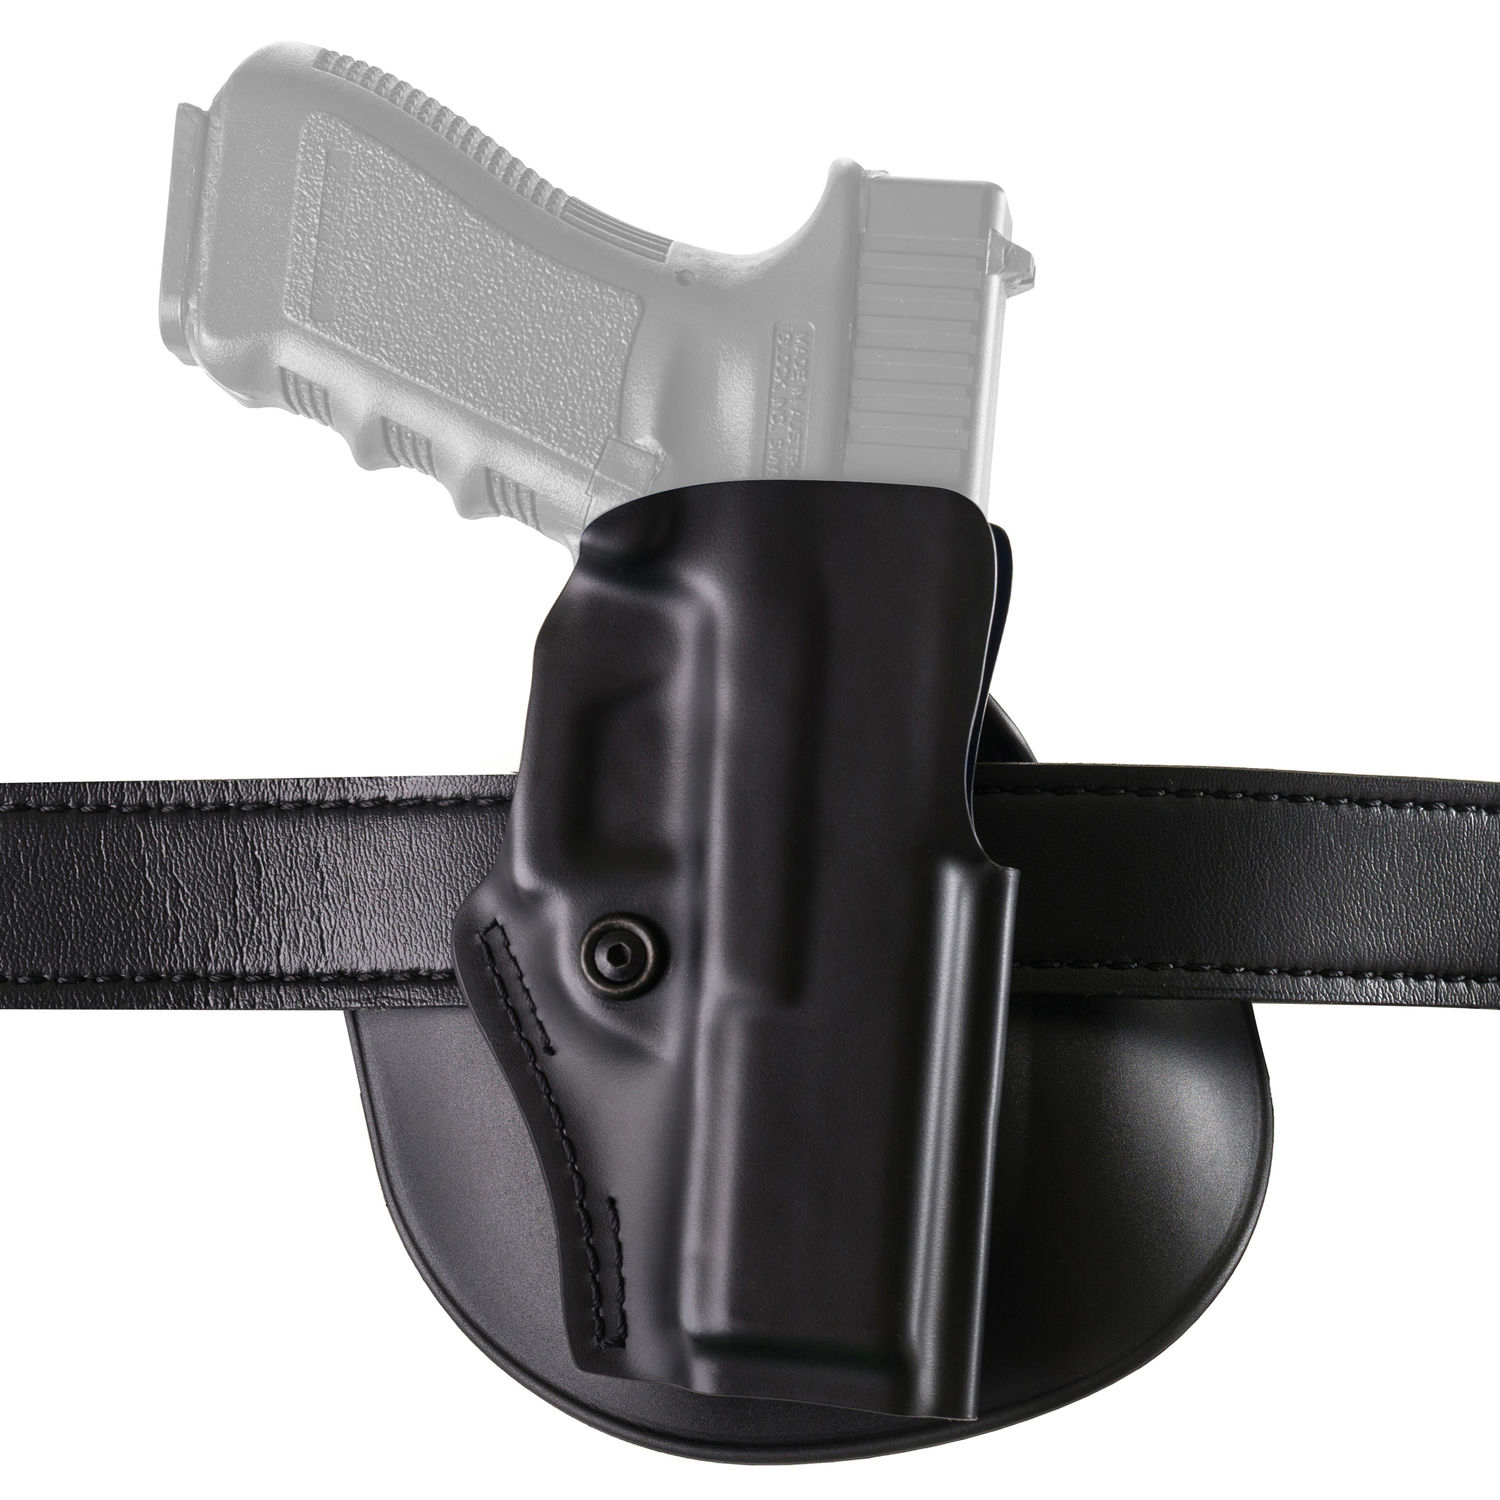 Safariland Model 5198 Open Top Concealment Holster, 1911 5″